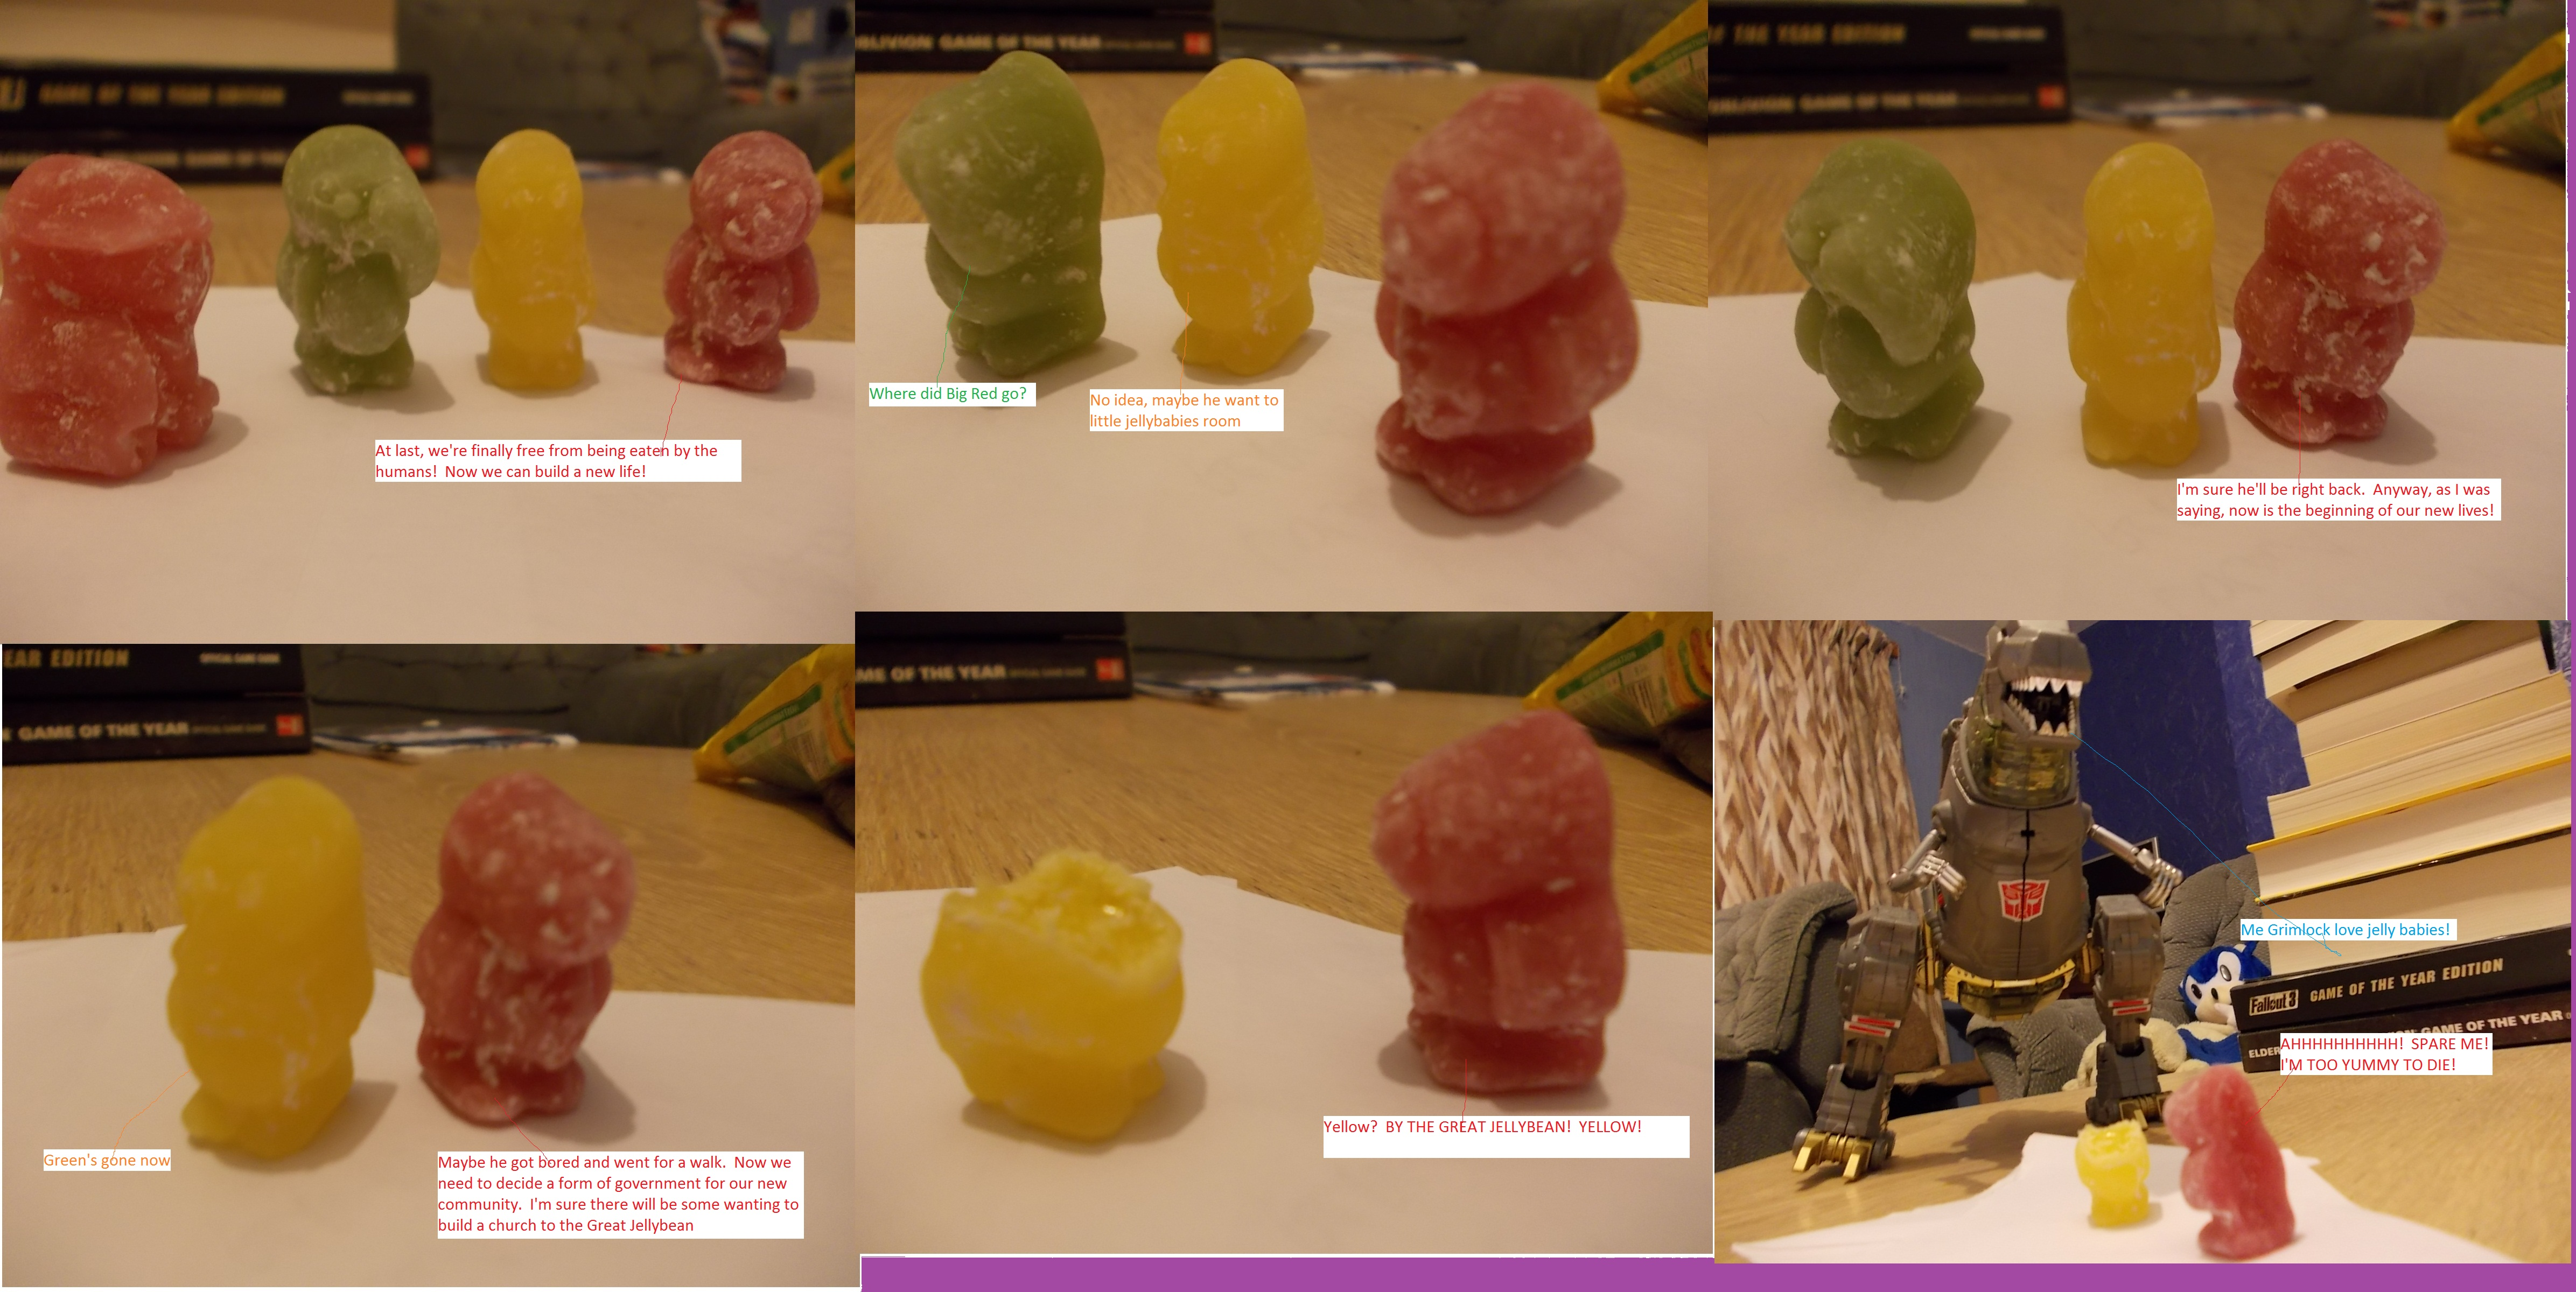 pity_the_jellybabies_by_reinahw-d5qtmdm.jpg